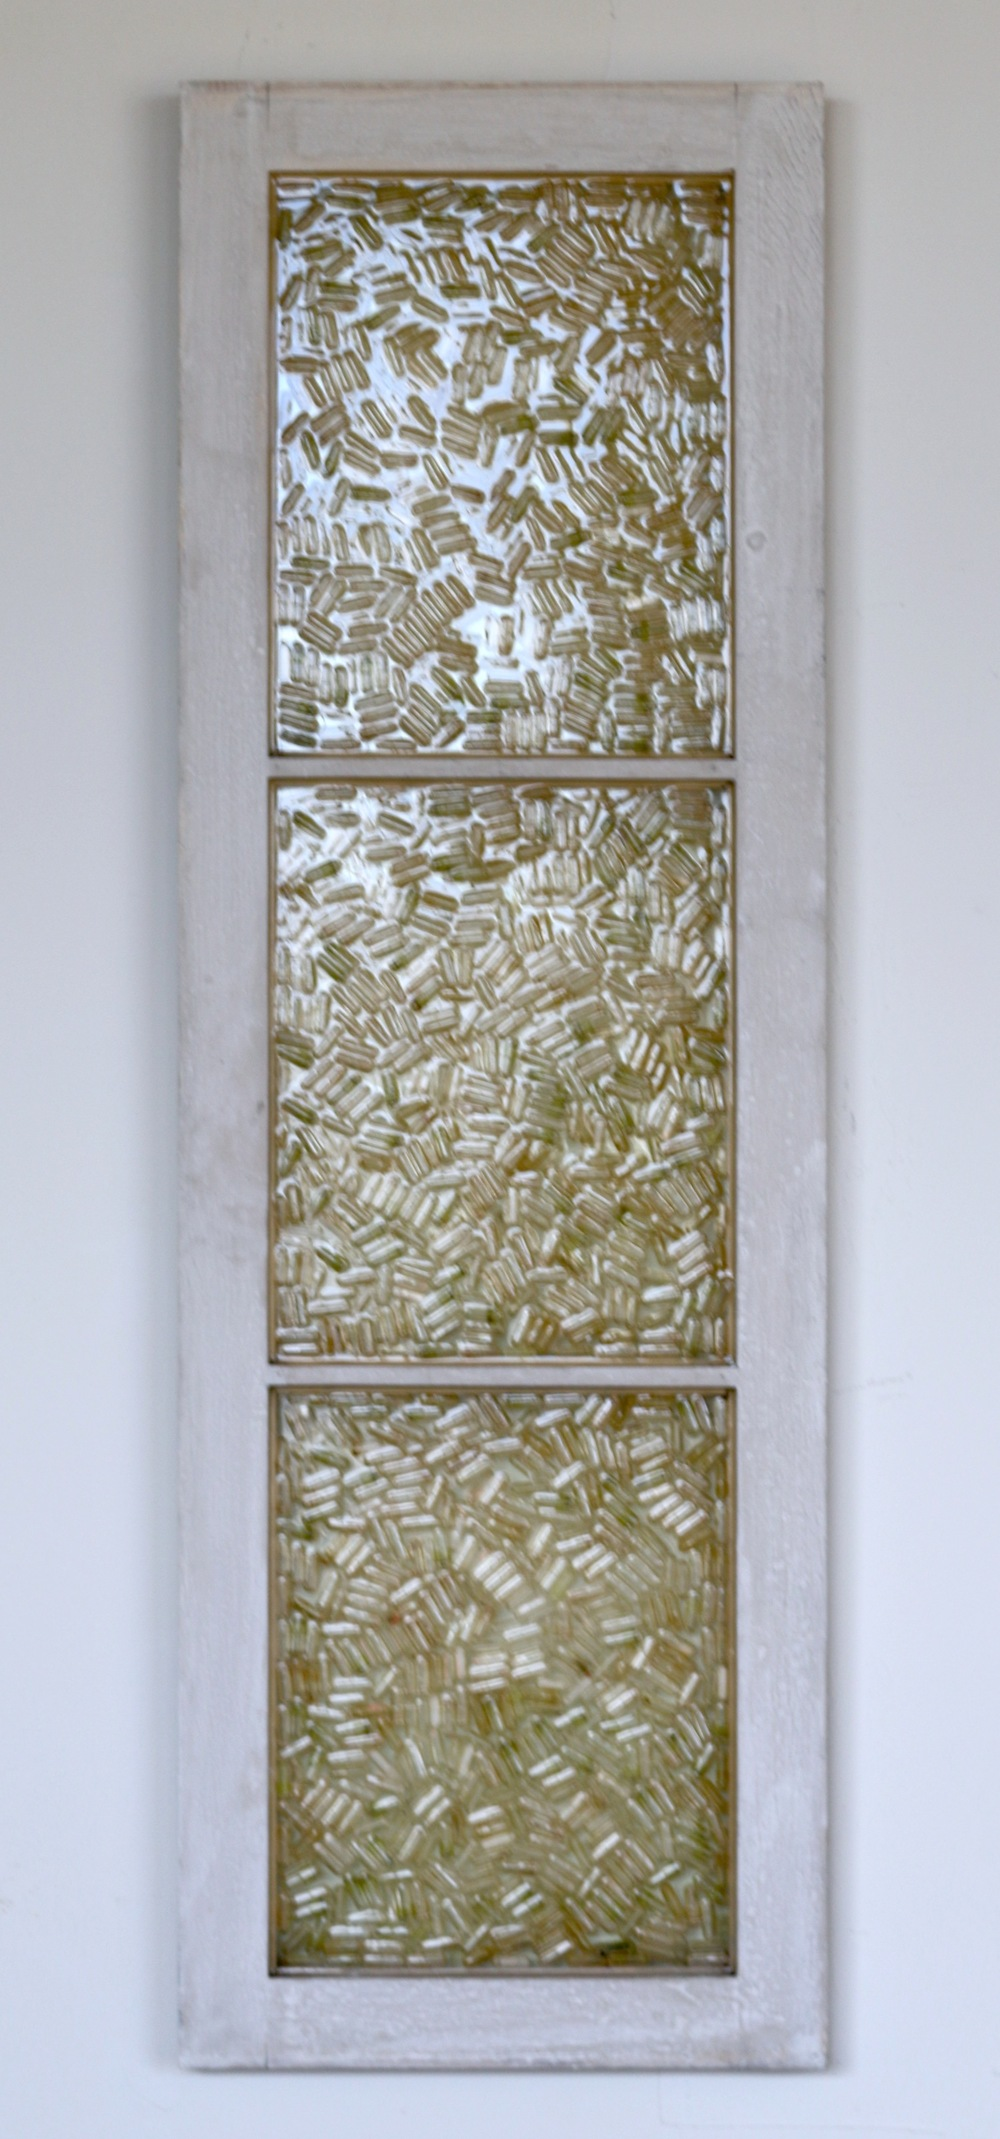 "Making Space, Filling it Up, window, empty pills, resin, 14.75x45"", 2015, Price: $900."